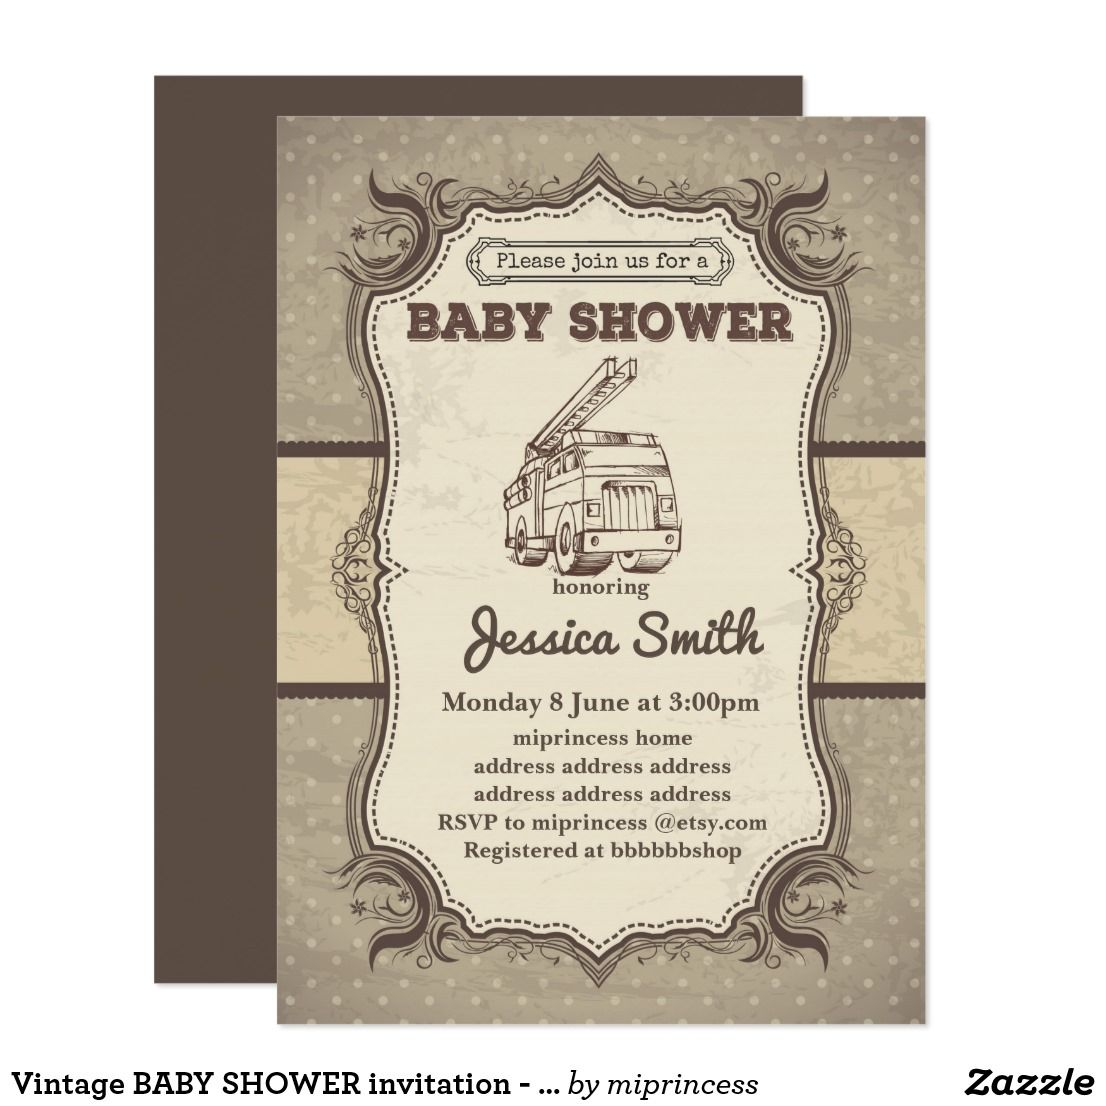 Vintage BABY SHOWER invitation - toy fire truck | Vintage baby ...